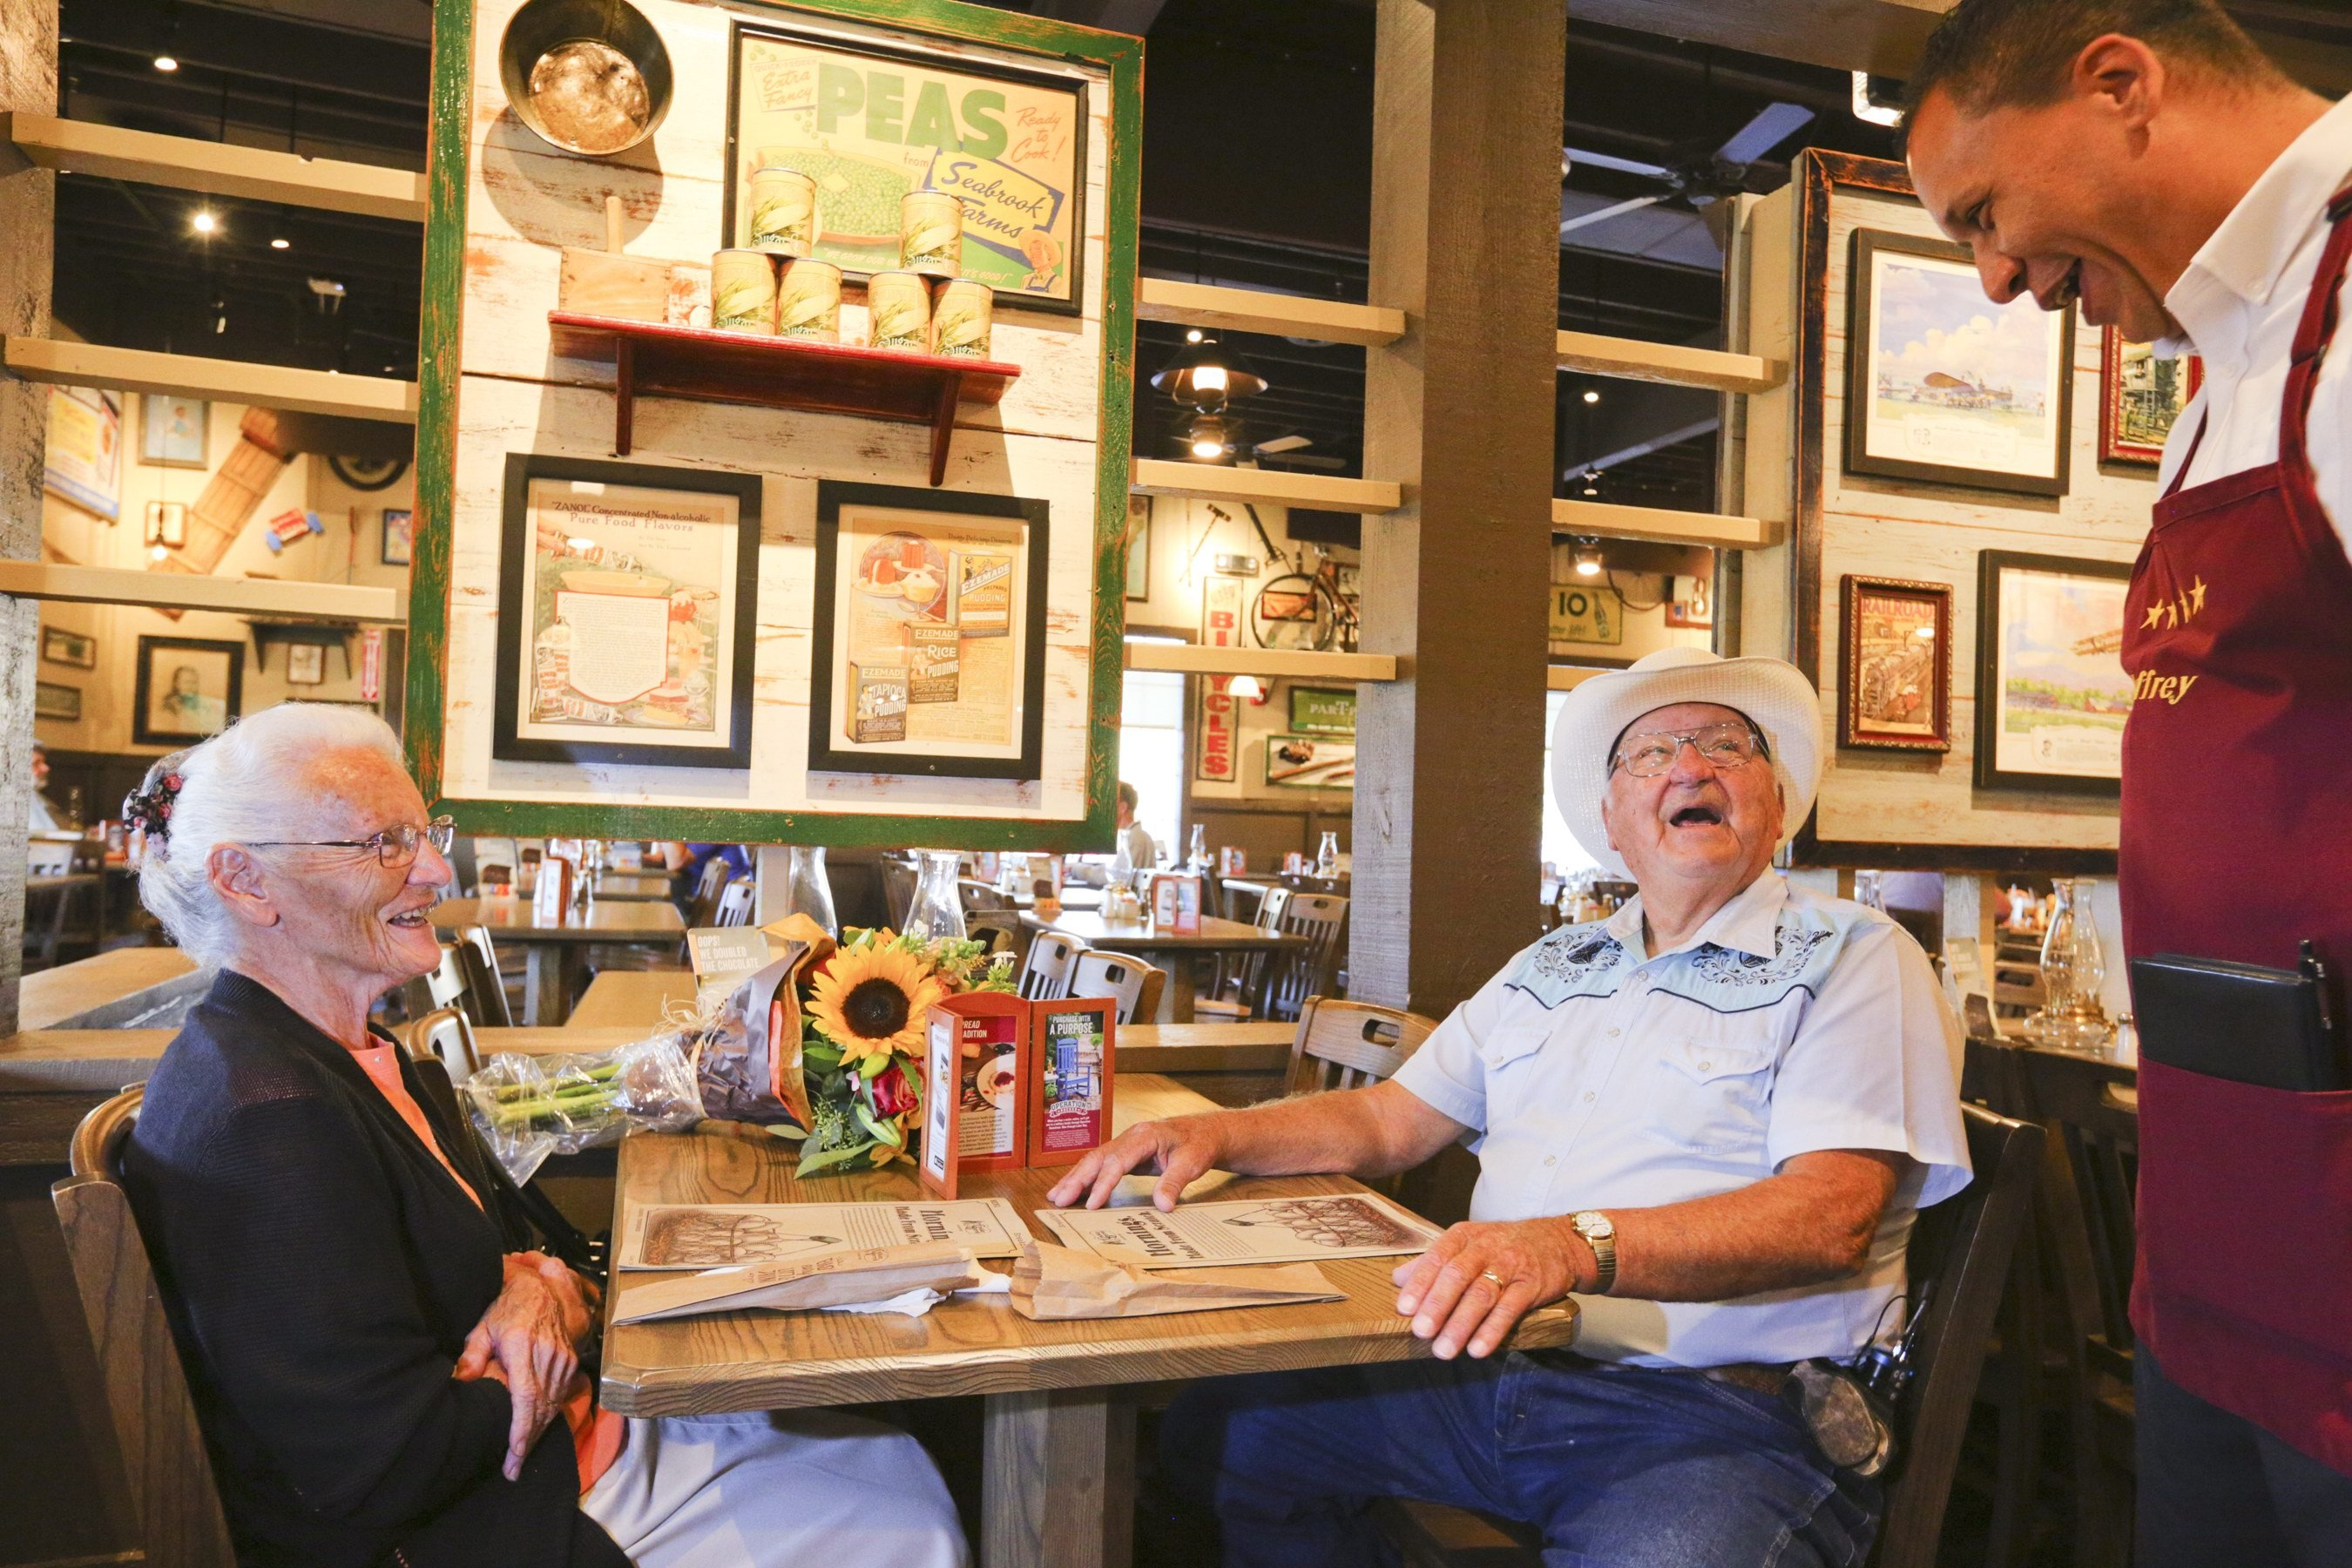 Cracker Barrel fulfills couple's goal to visit all locations